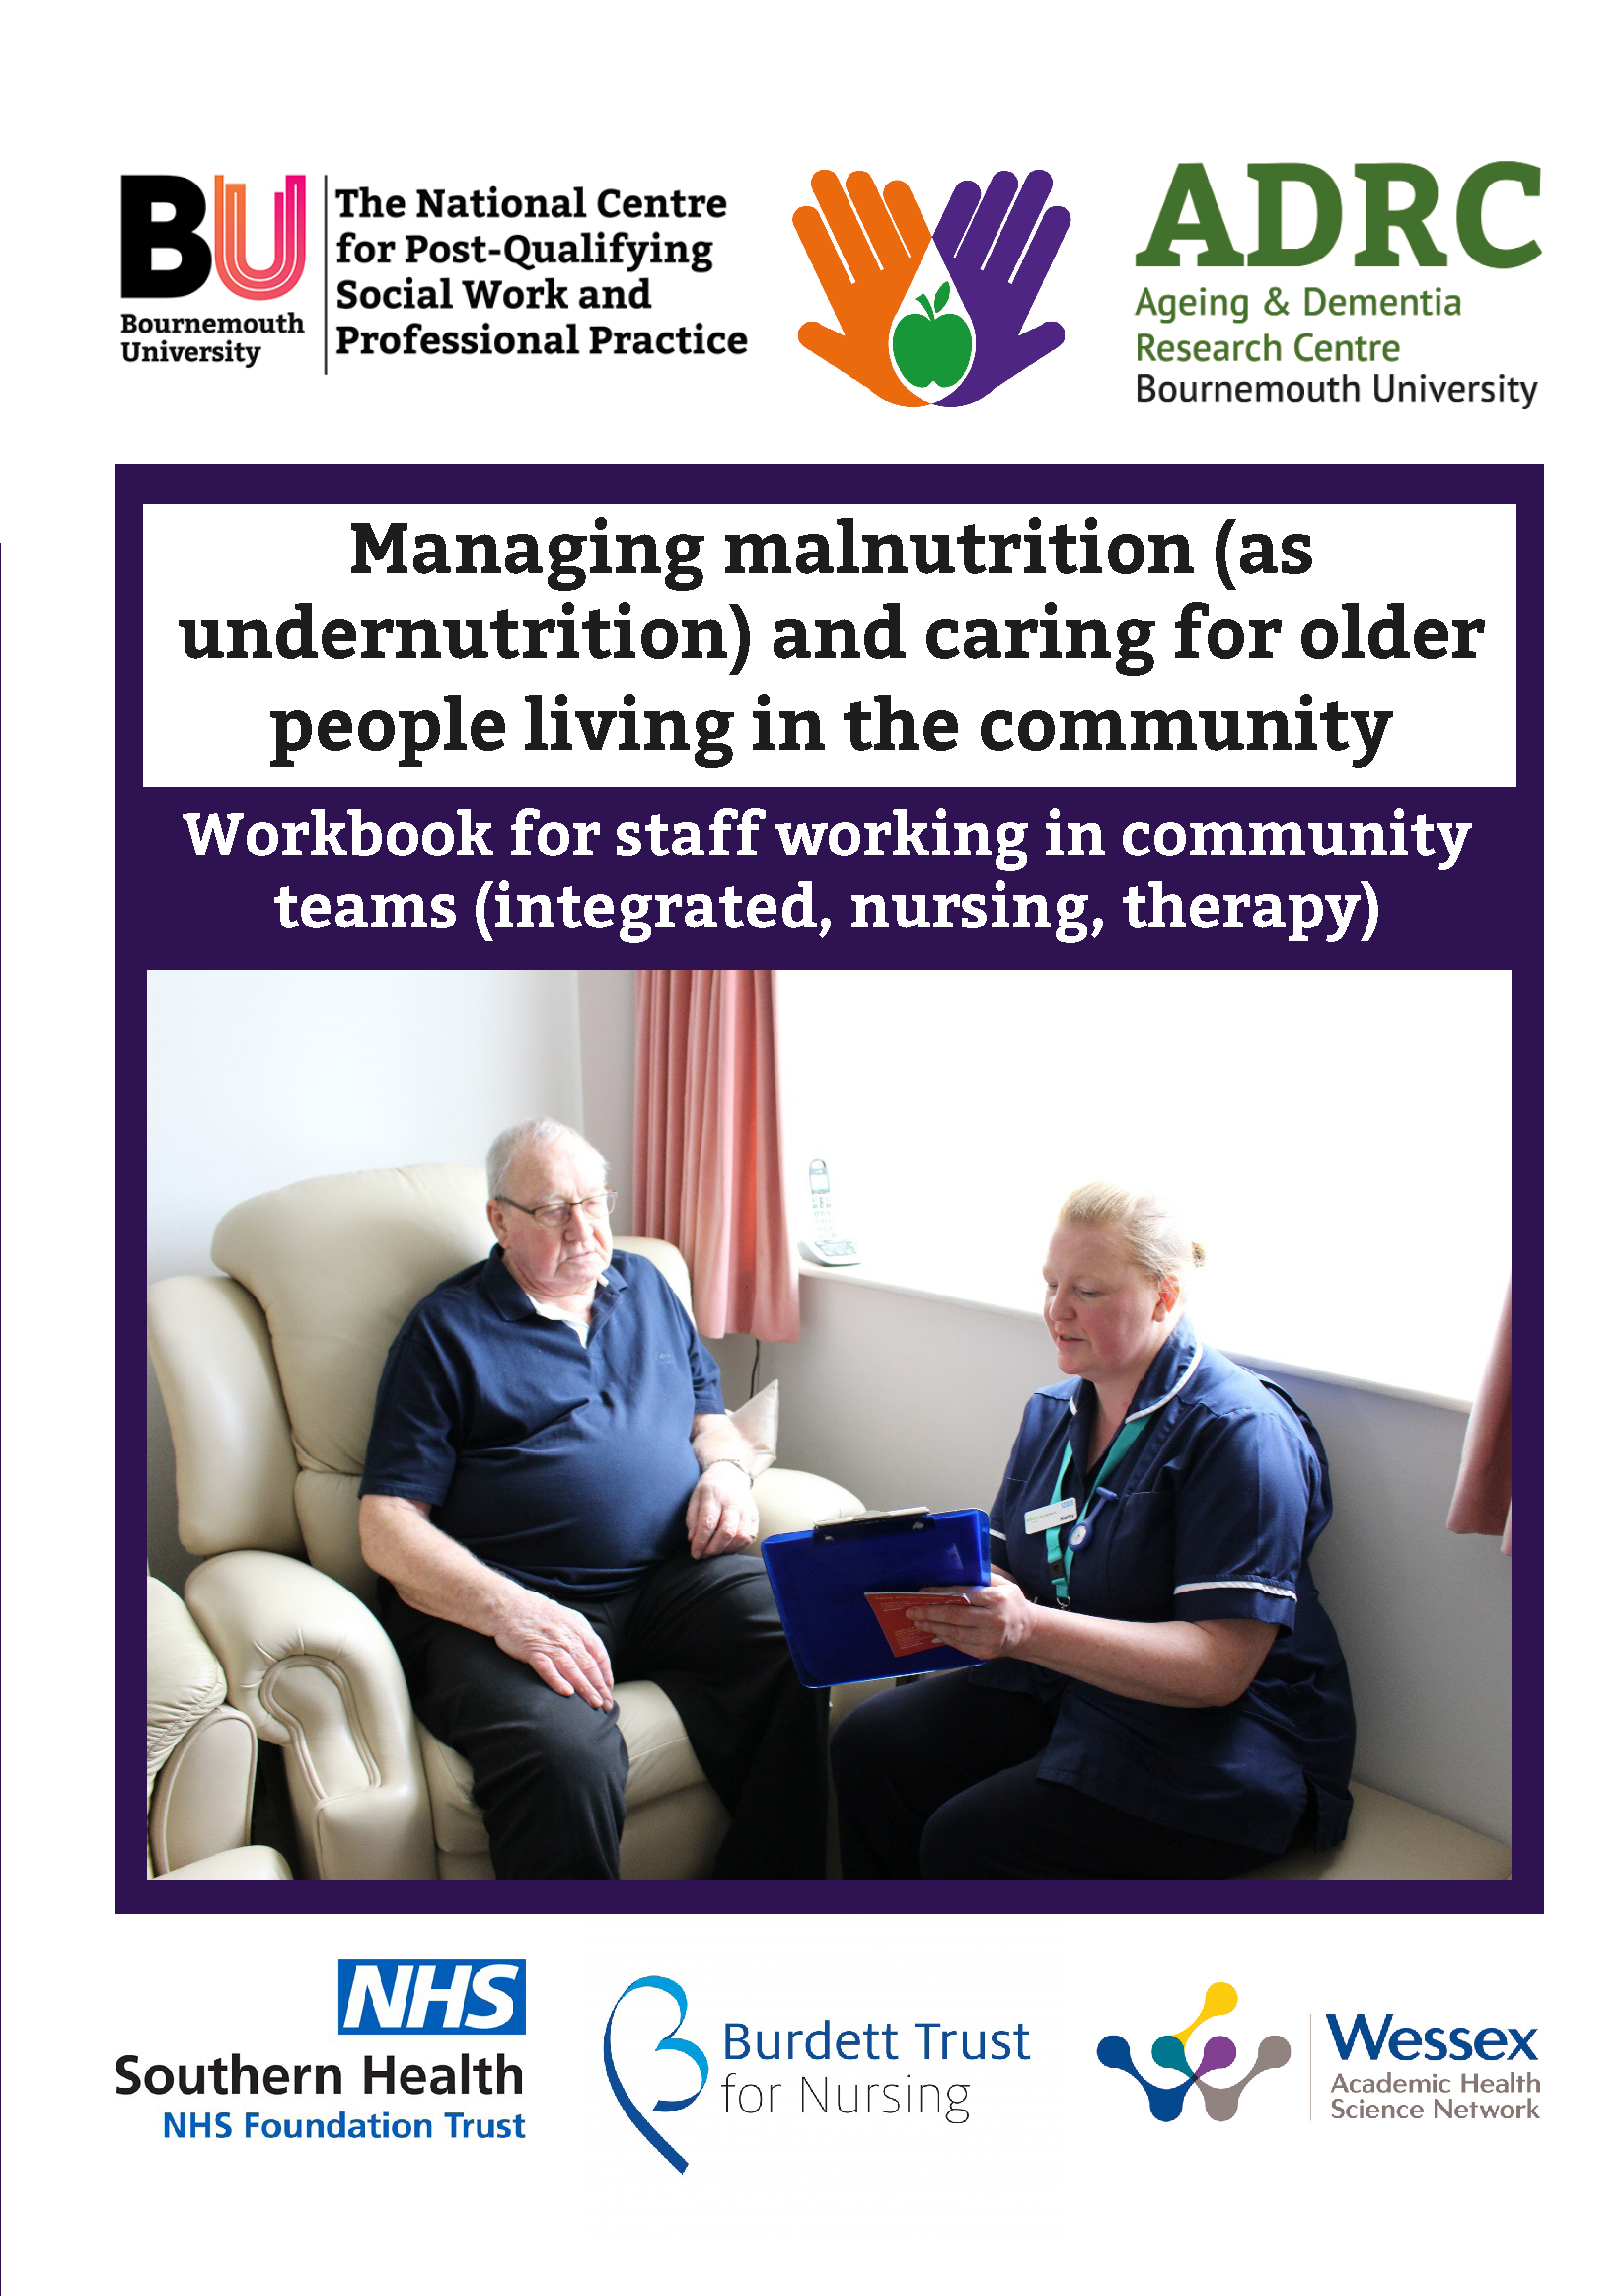 Managing malnutrition and caring for older people in the community guidebook